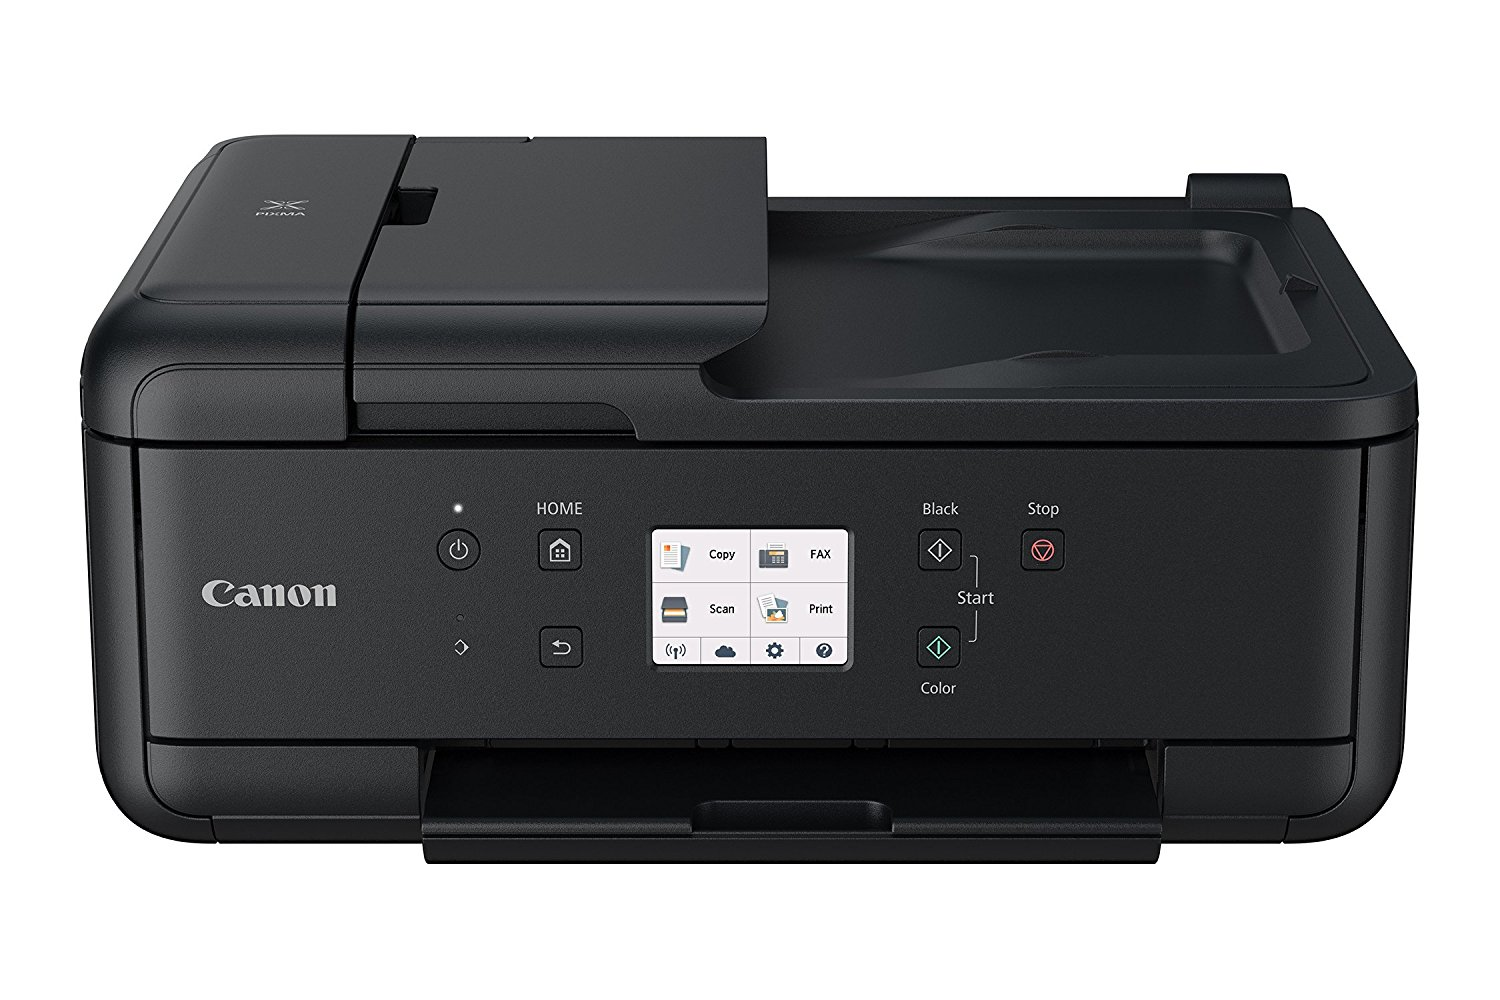 DESKJET 5438 PRINTER DRIVERS FOR WINDOWS 10